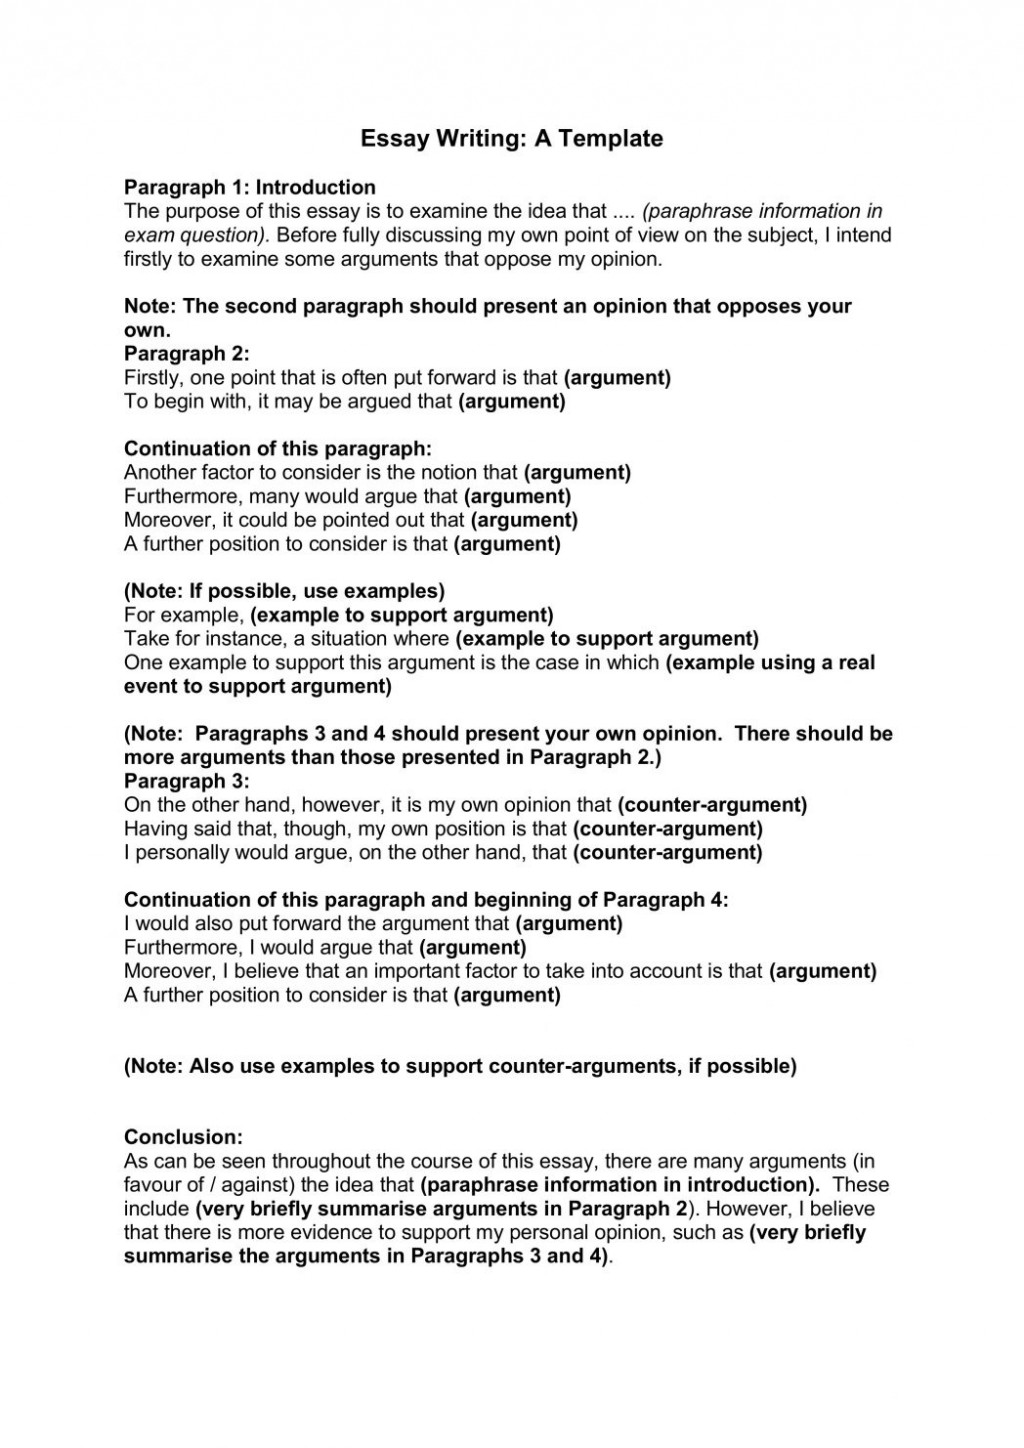 011 Opinion Essays Essay An Learnenglish Teens How To Write Esl Writing Template For P Simple Example In Ielts Introduction Balanced Persuasive Legal Successful 1048x1482 Shocking Argumentative 5th Grade Video Large